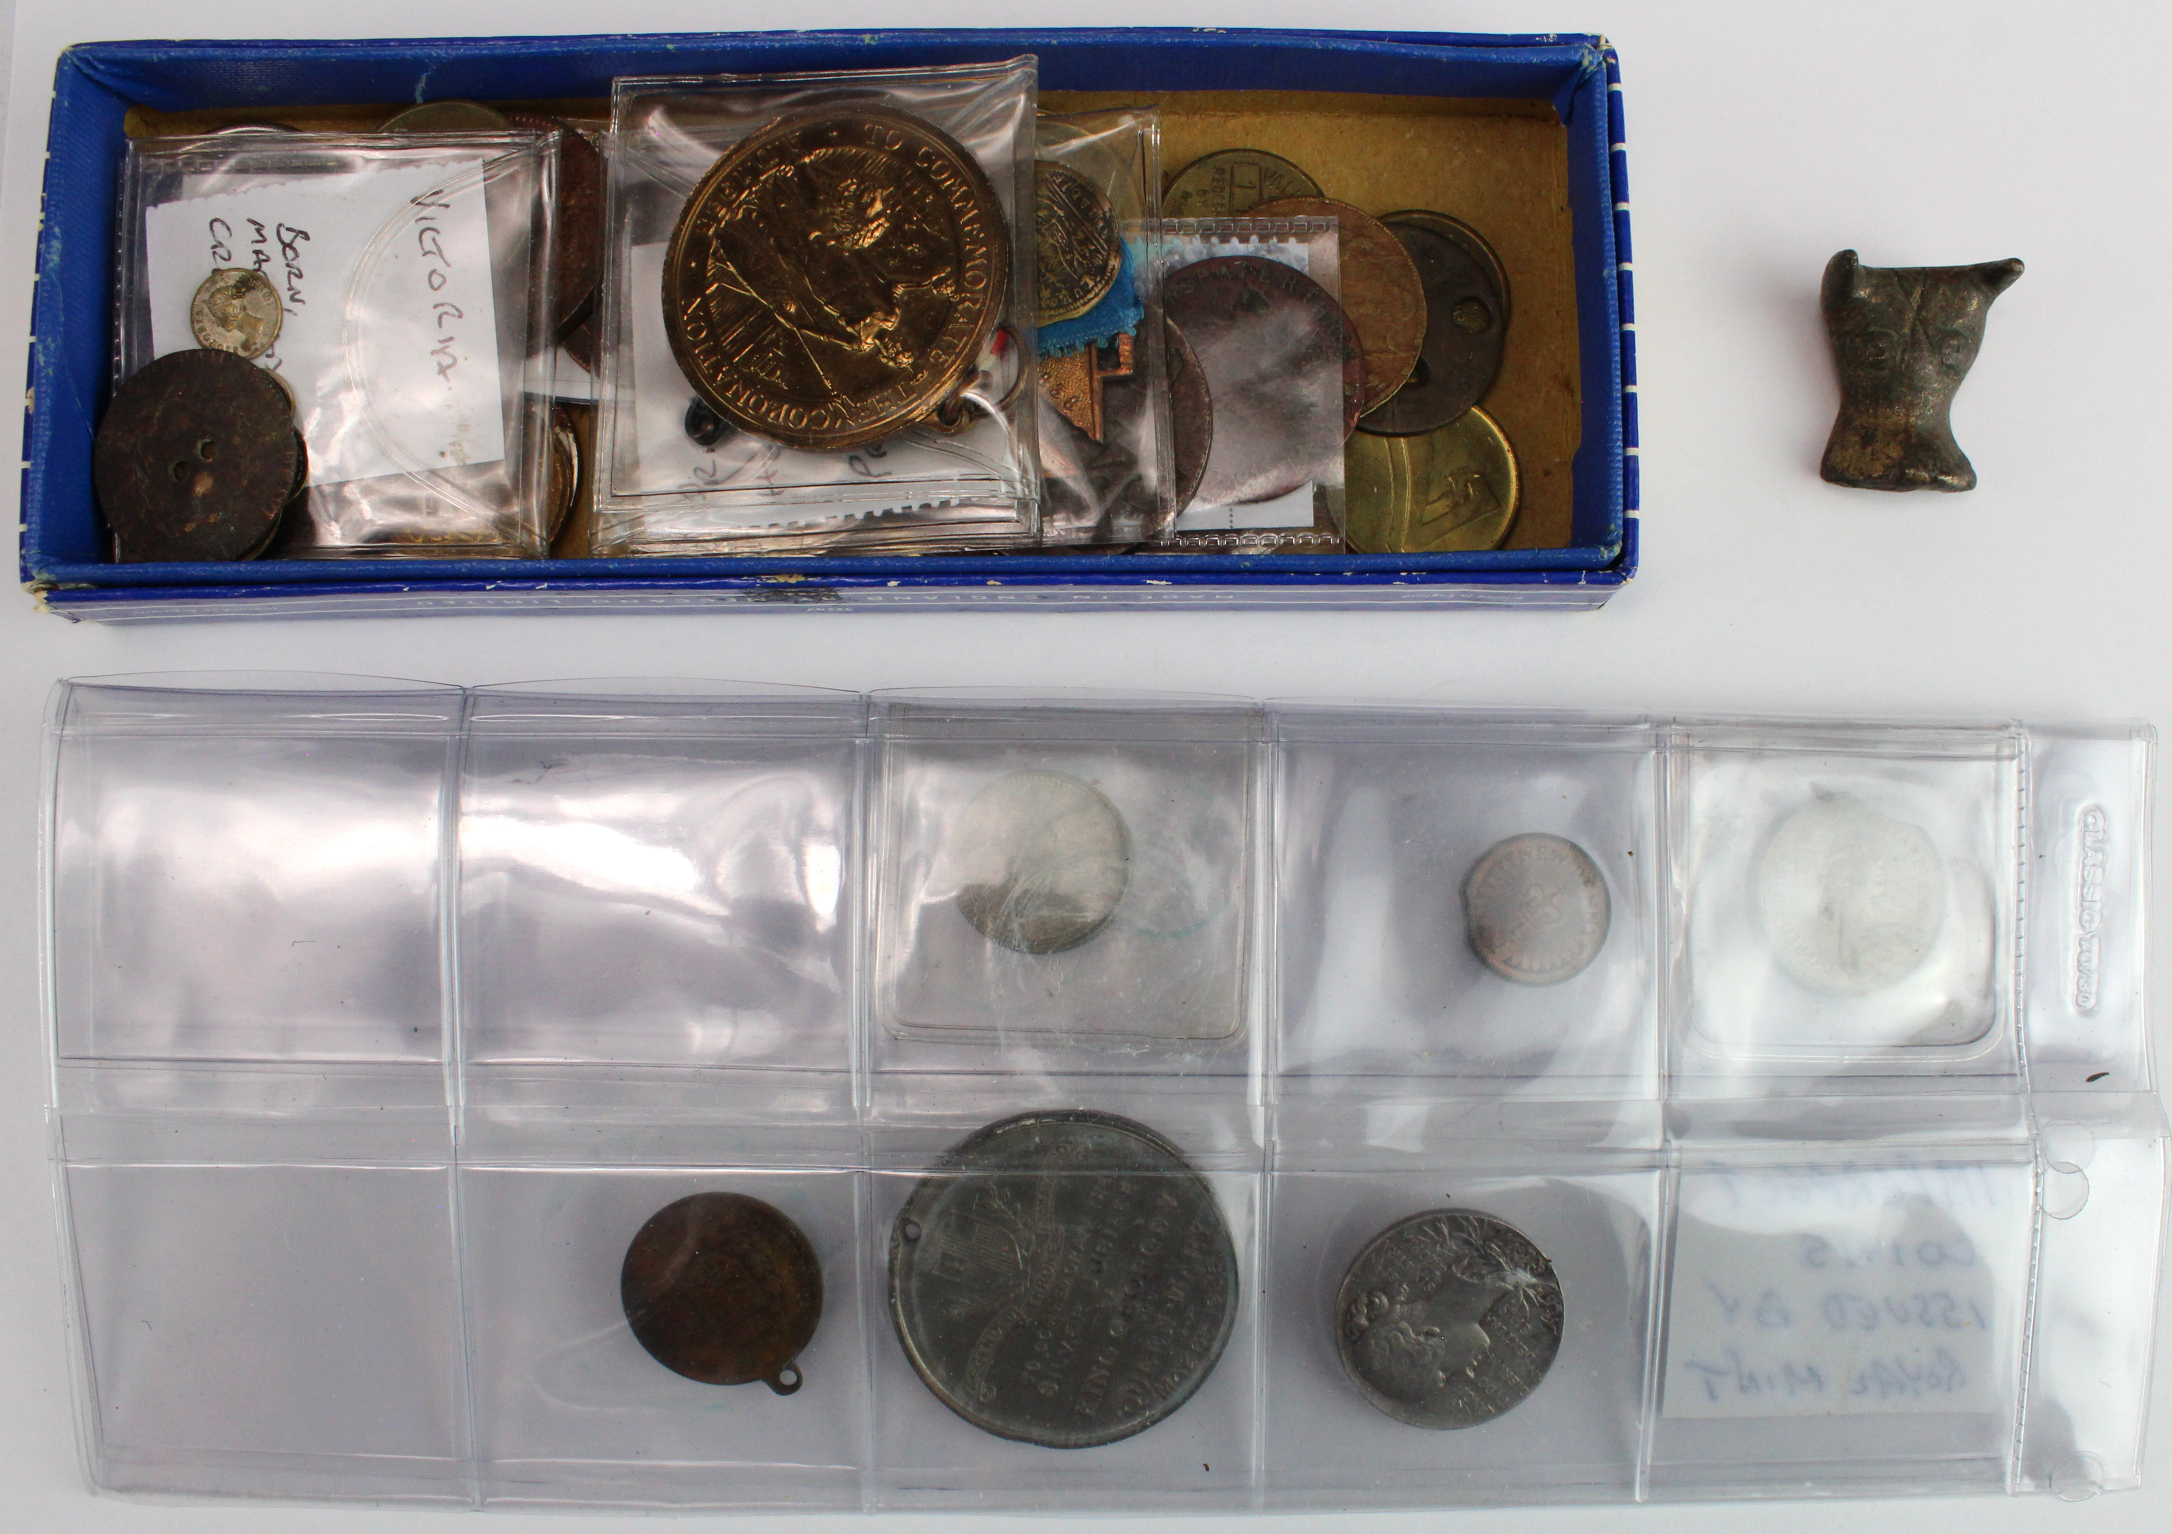 Tokens, medals, error coins etc: 17th-20thC, one silver medal noted, also an artefact: Bull's head